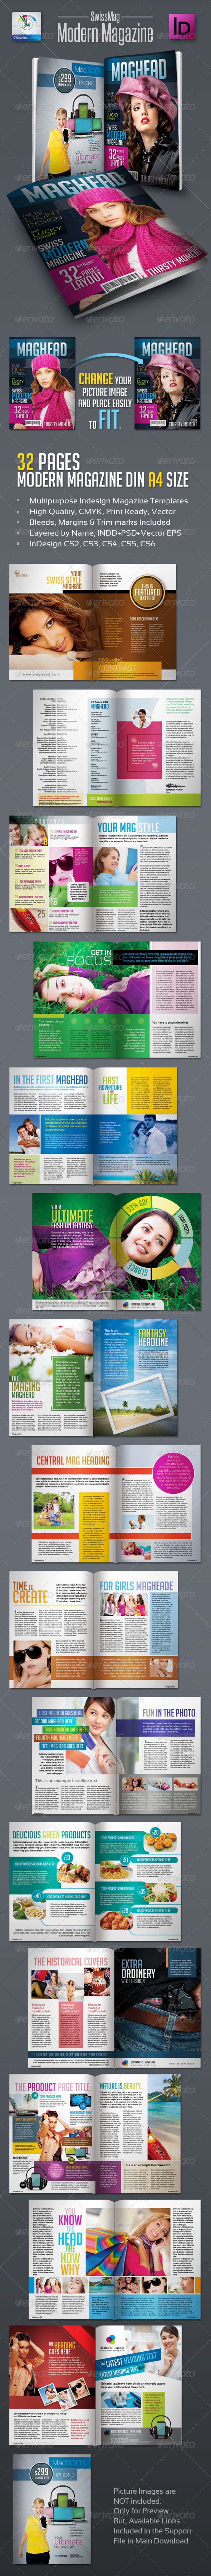 SwissMag Modern Magazine Templates 32pages - Magazines Print Templates